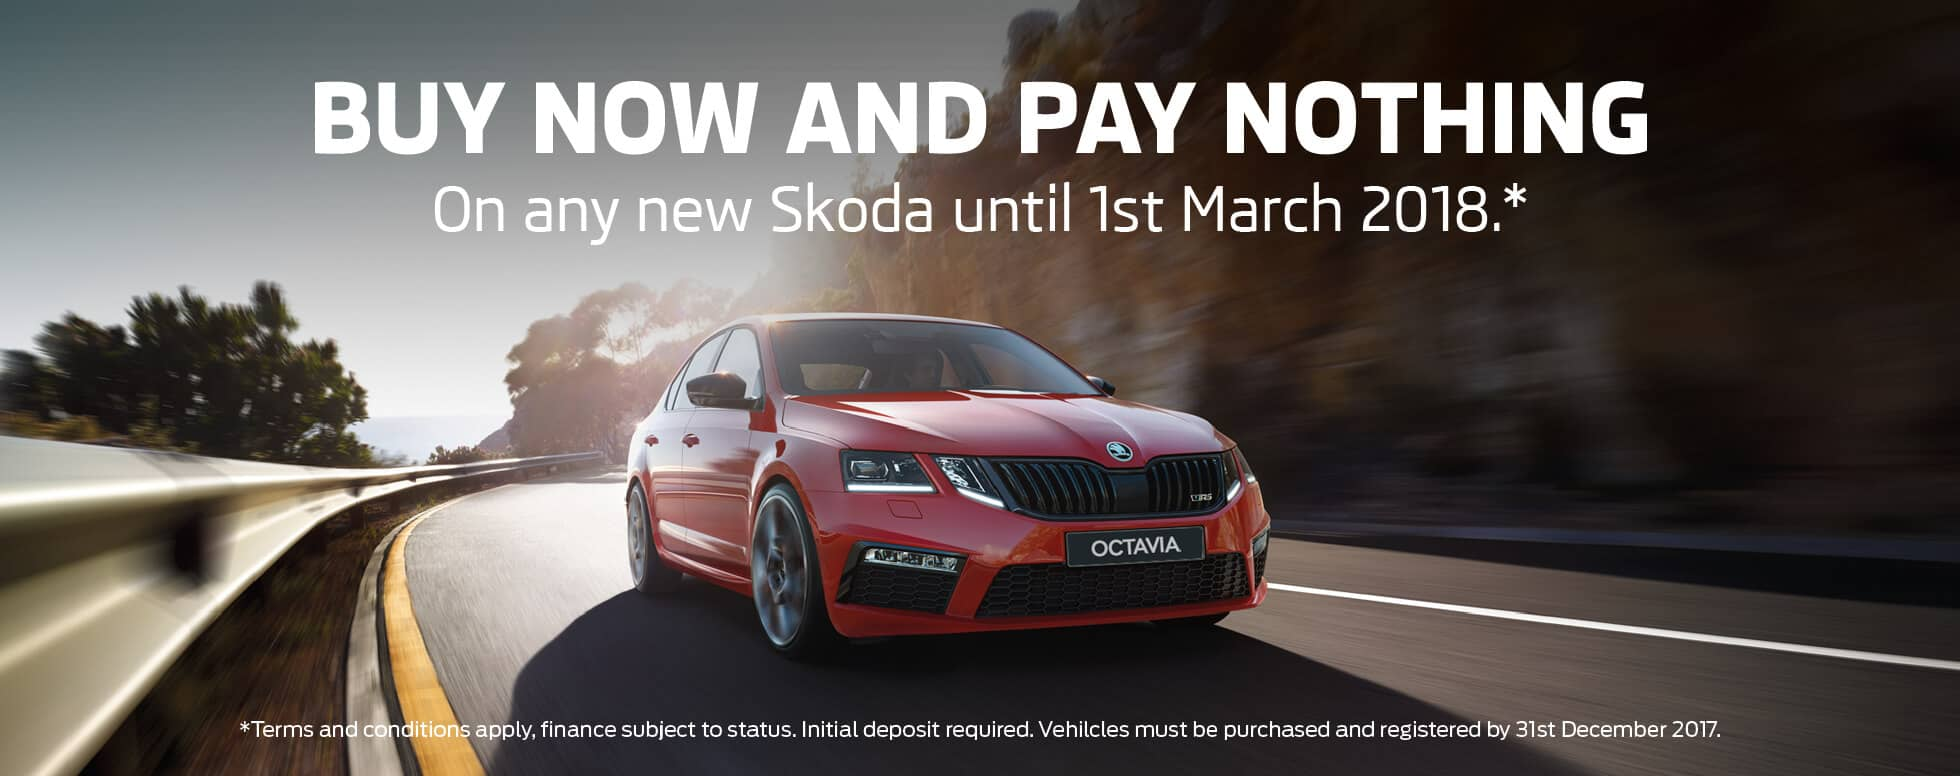 Skoda Buy now pay nothing BB